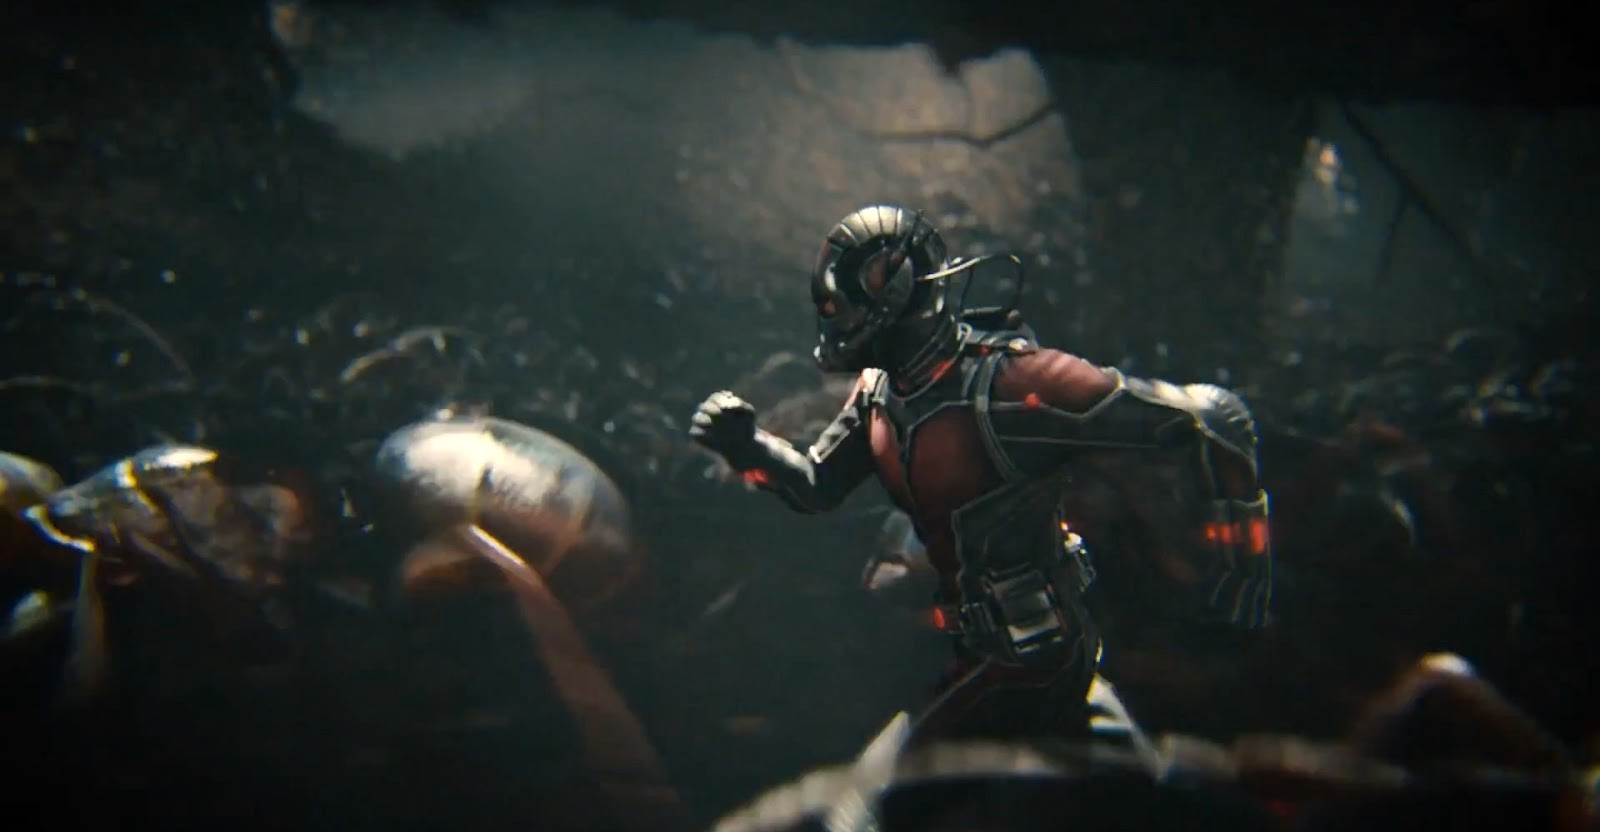 ant man - photo #26